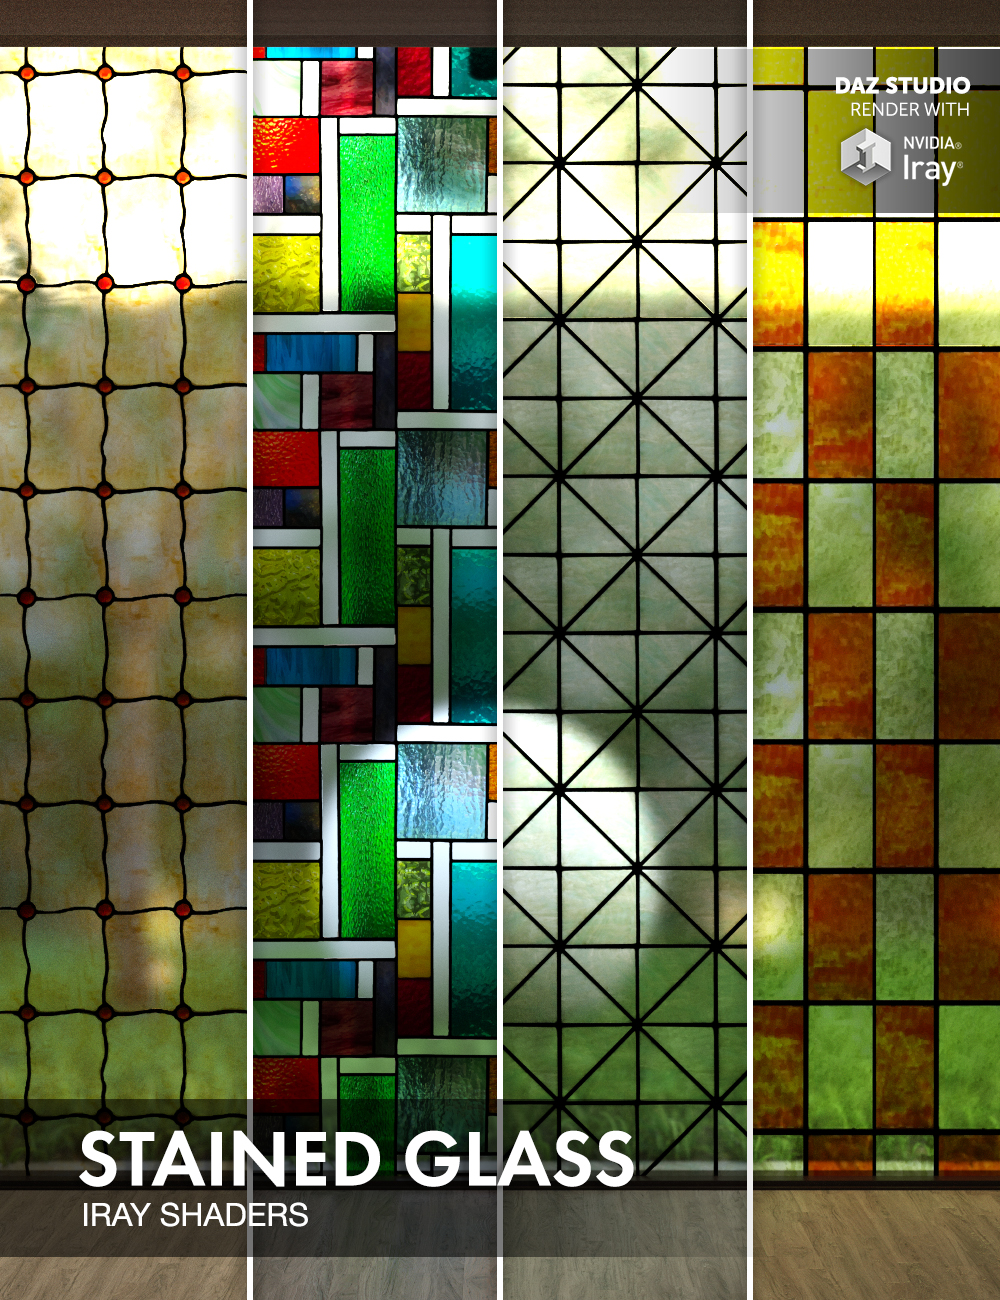 Stained Glass - Iray Shaders by: Dimidrol, 3D Models by Daz 3D